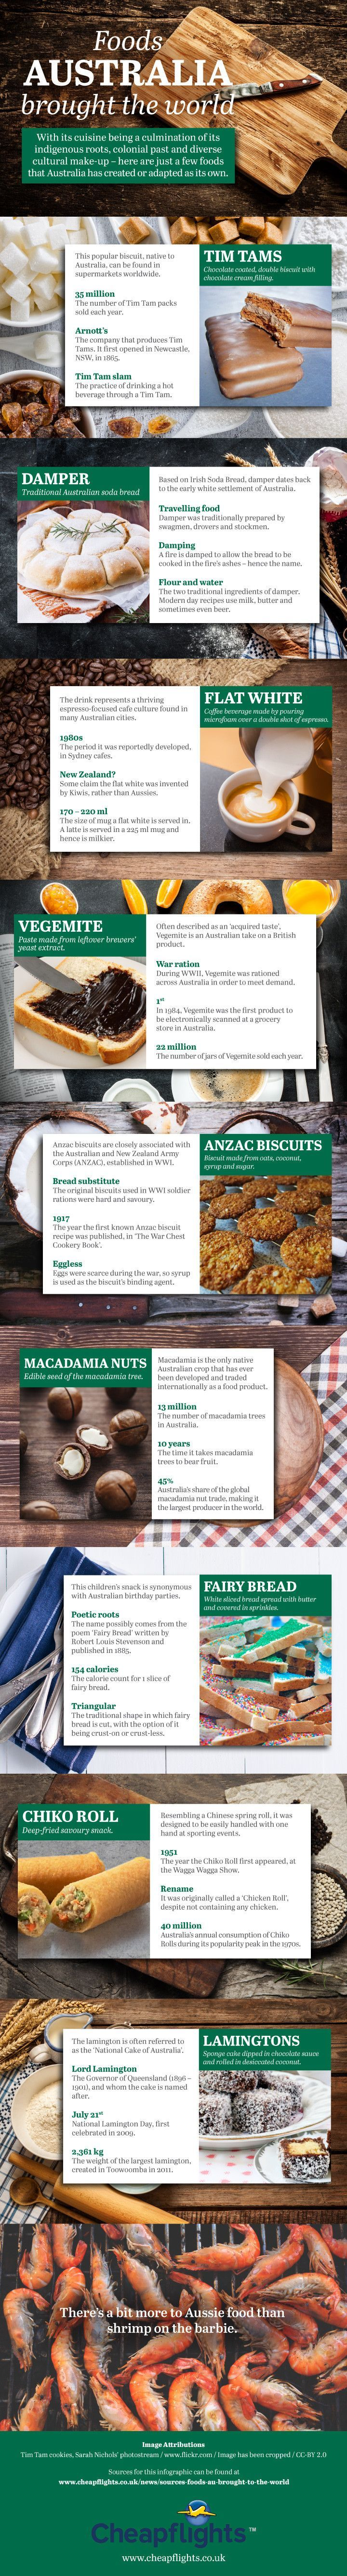 Foods that Australia Brought the World    #infographic #Food #Australia